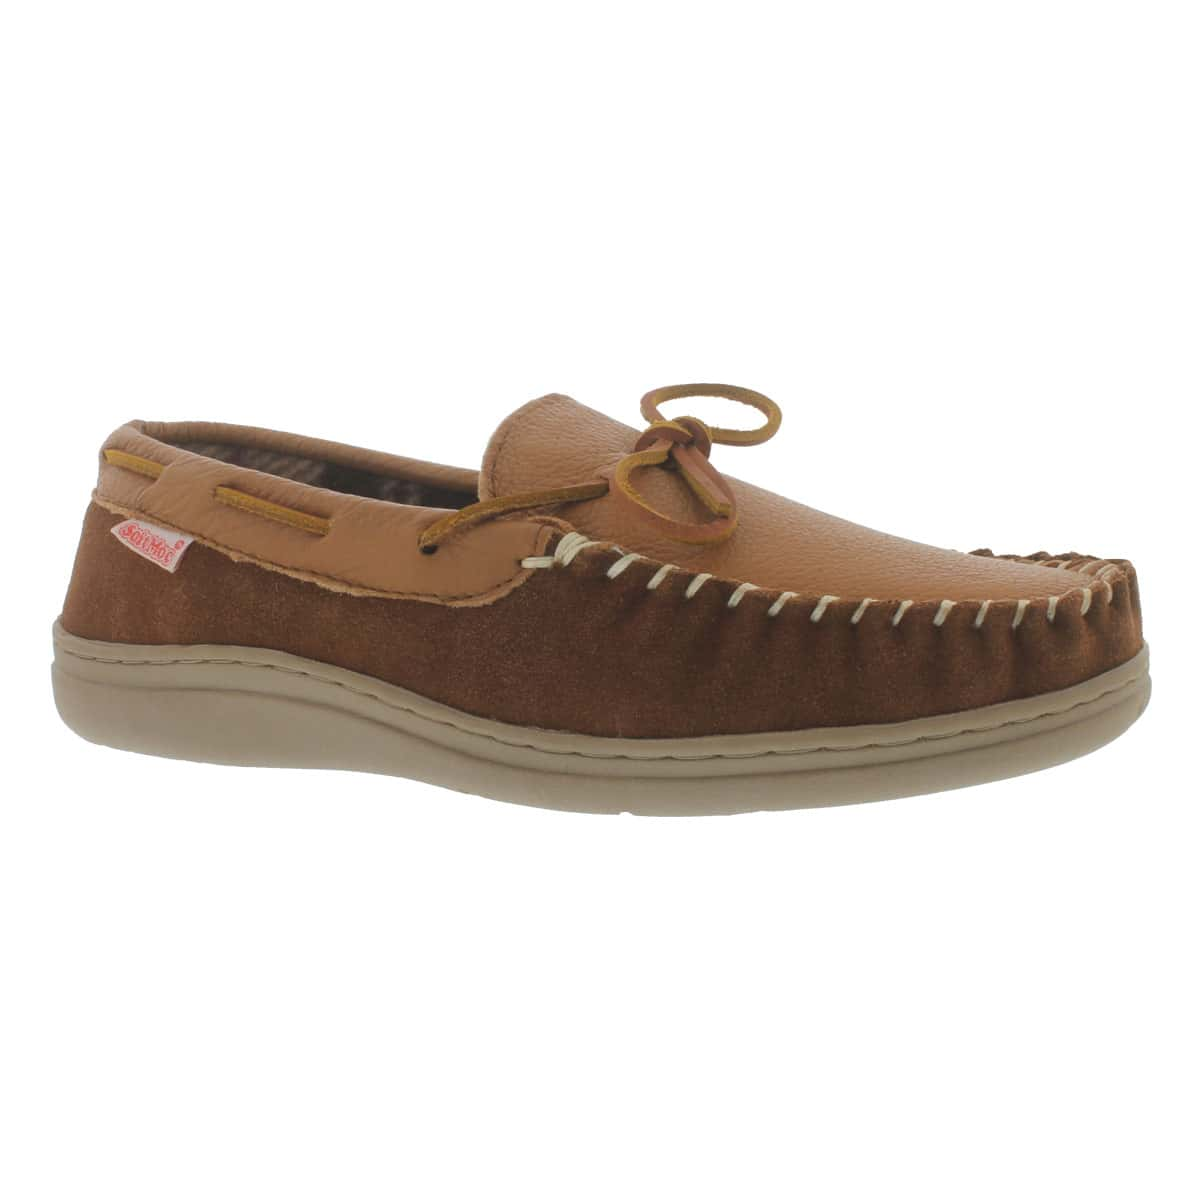 Mns Damien spice lined leather mocc